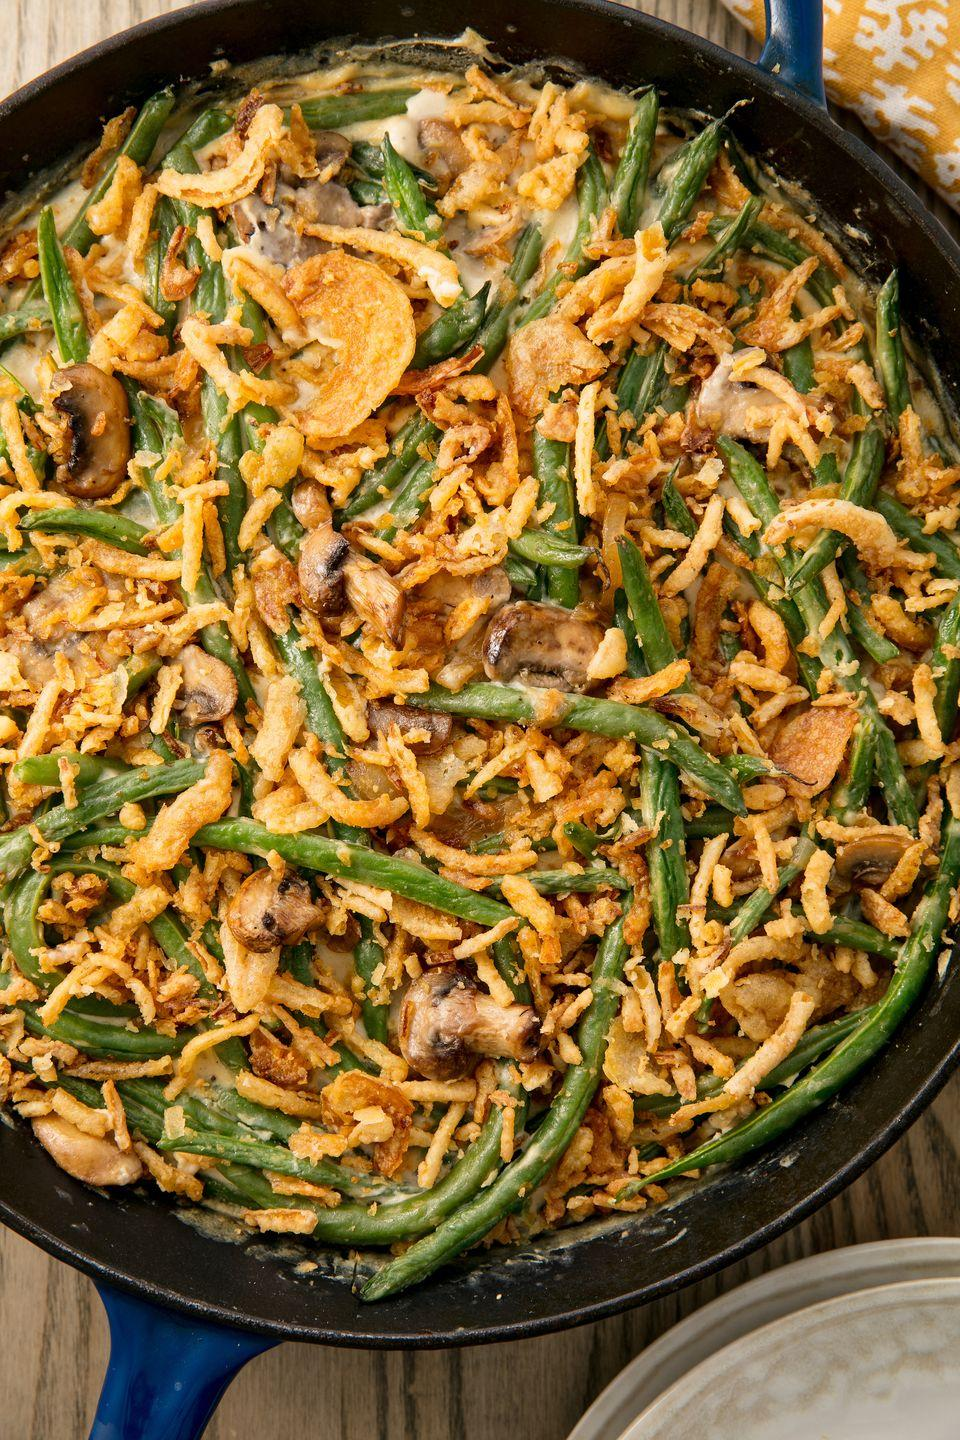 """<p>The epitome of Thanksgiving.</p><p>Get the recipe from <a href=""""https://www.delish.com/cooking/recipe-ideas/recipes/a55340/easy-homemade-classic-green-bean-casserole-recipe/"""" rel=""""nofollow noopener"""" target=""""_blank"""" data-ylk=""""slk:Delish"""" class=""""link rapid-noclick-resp"""">Delish</a>.</p>"""